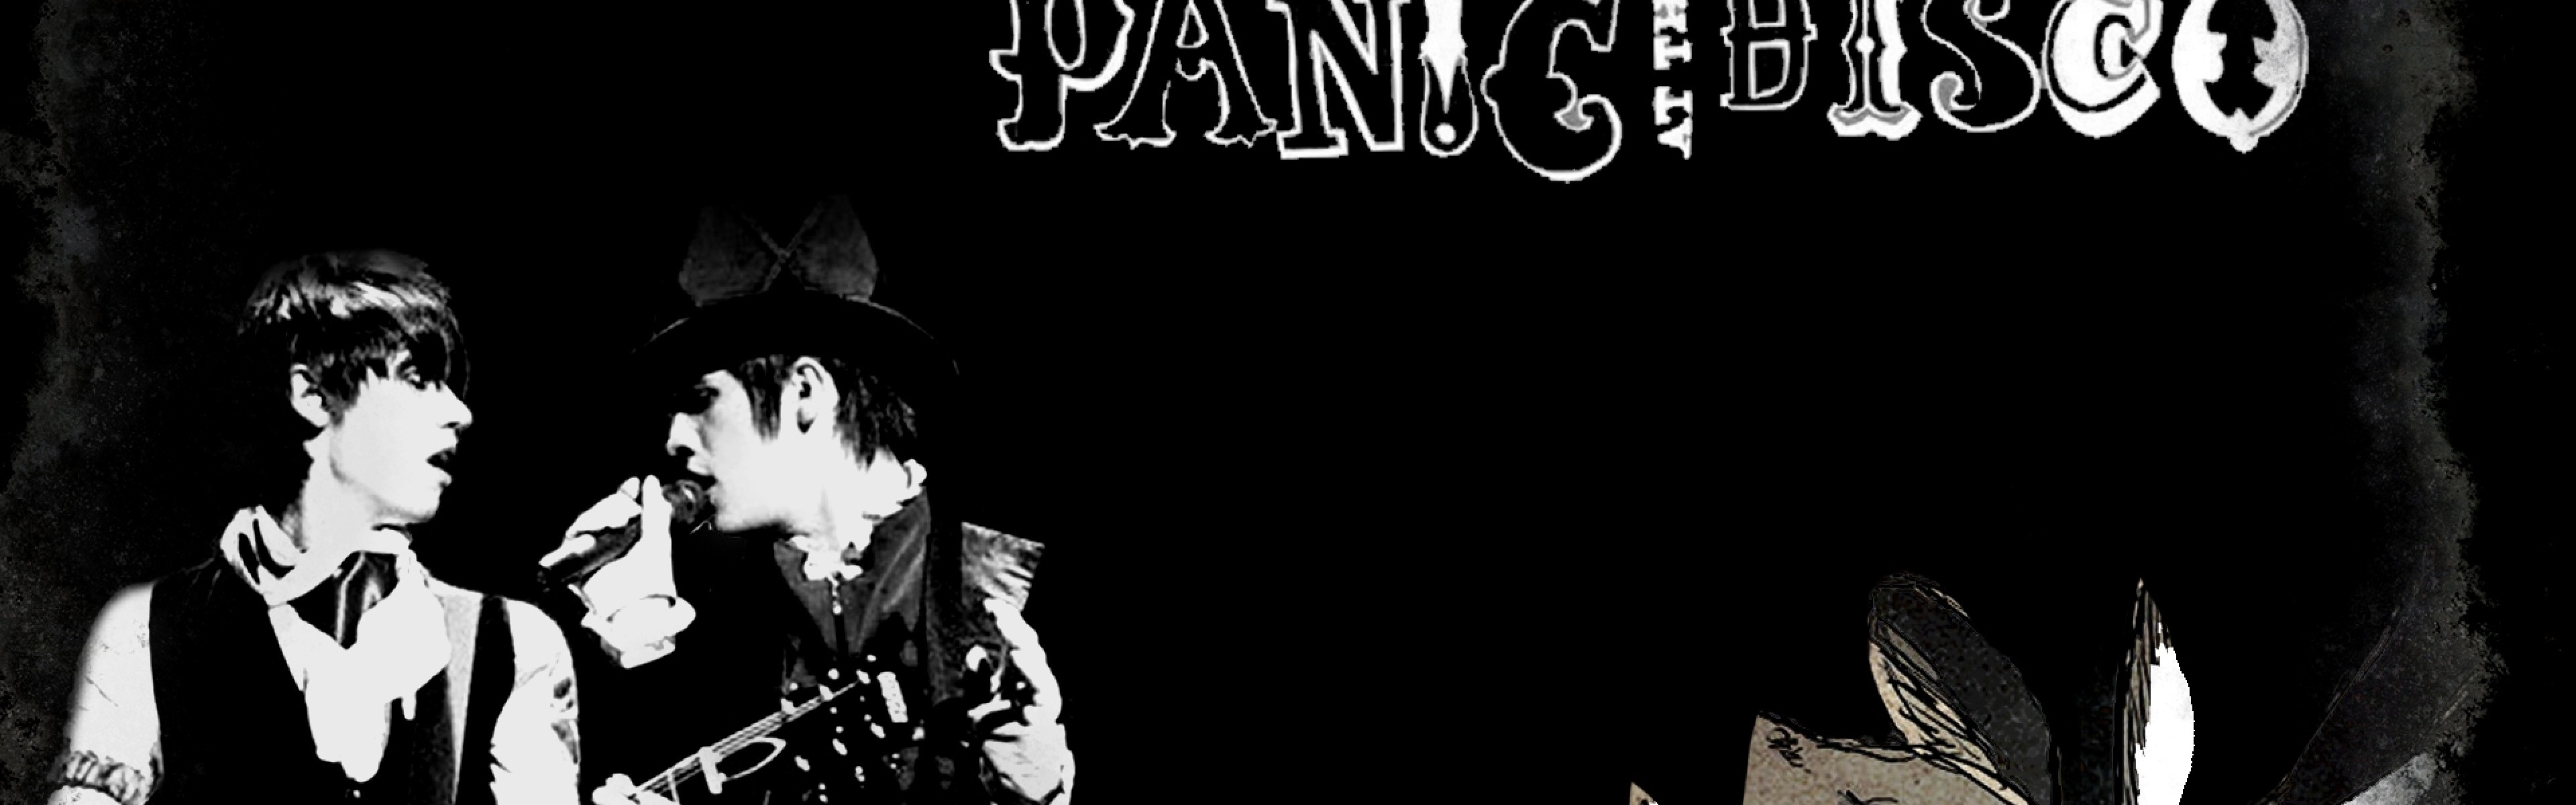 1920x1080 Download This Free Wallpaper With Images Of Panic At The Disco Vices And Virtues A Fever You Cant Sweat Out